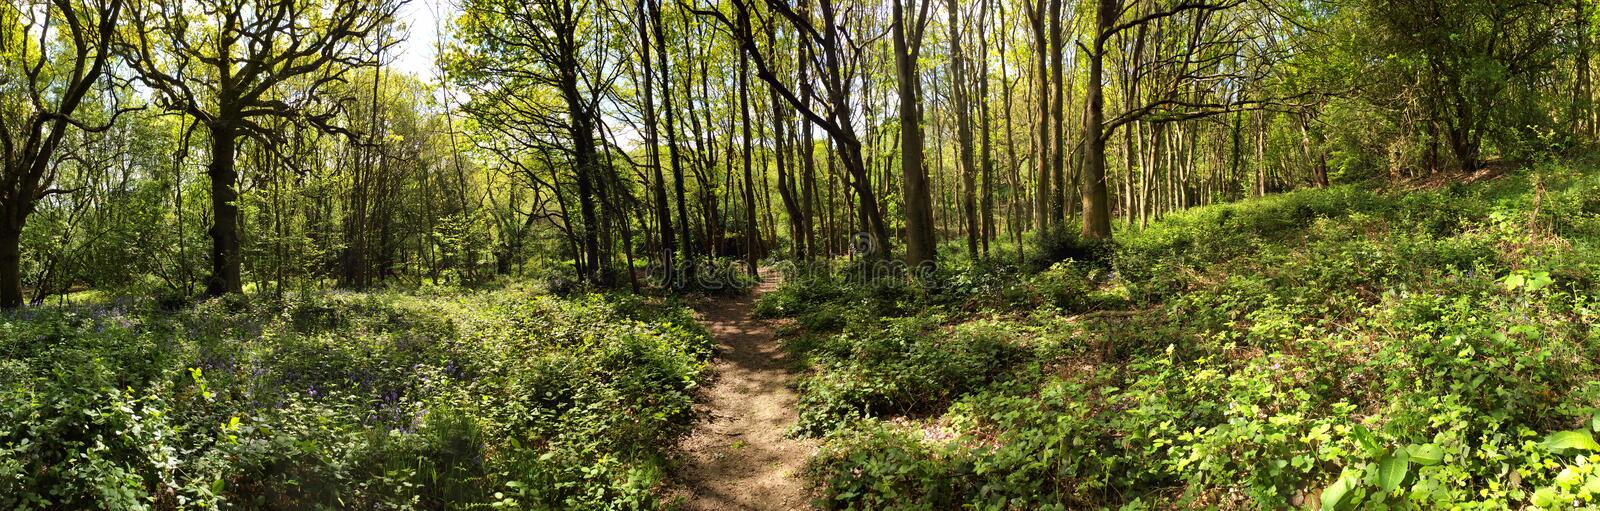 Ancient Meadow Forest royalty free stock photos